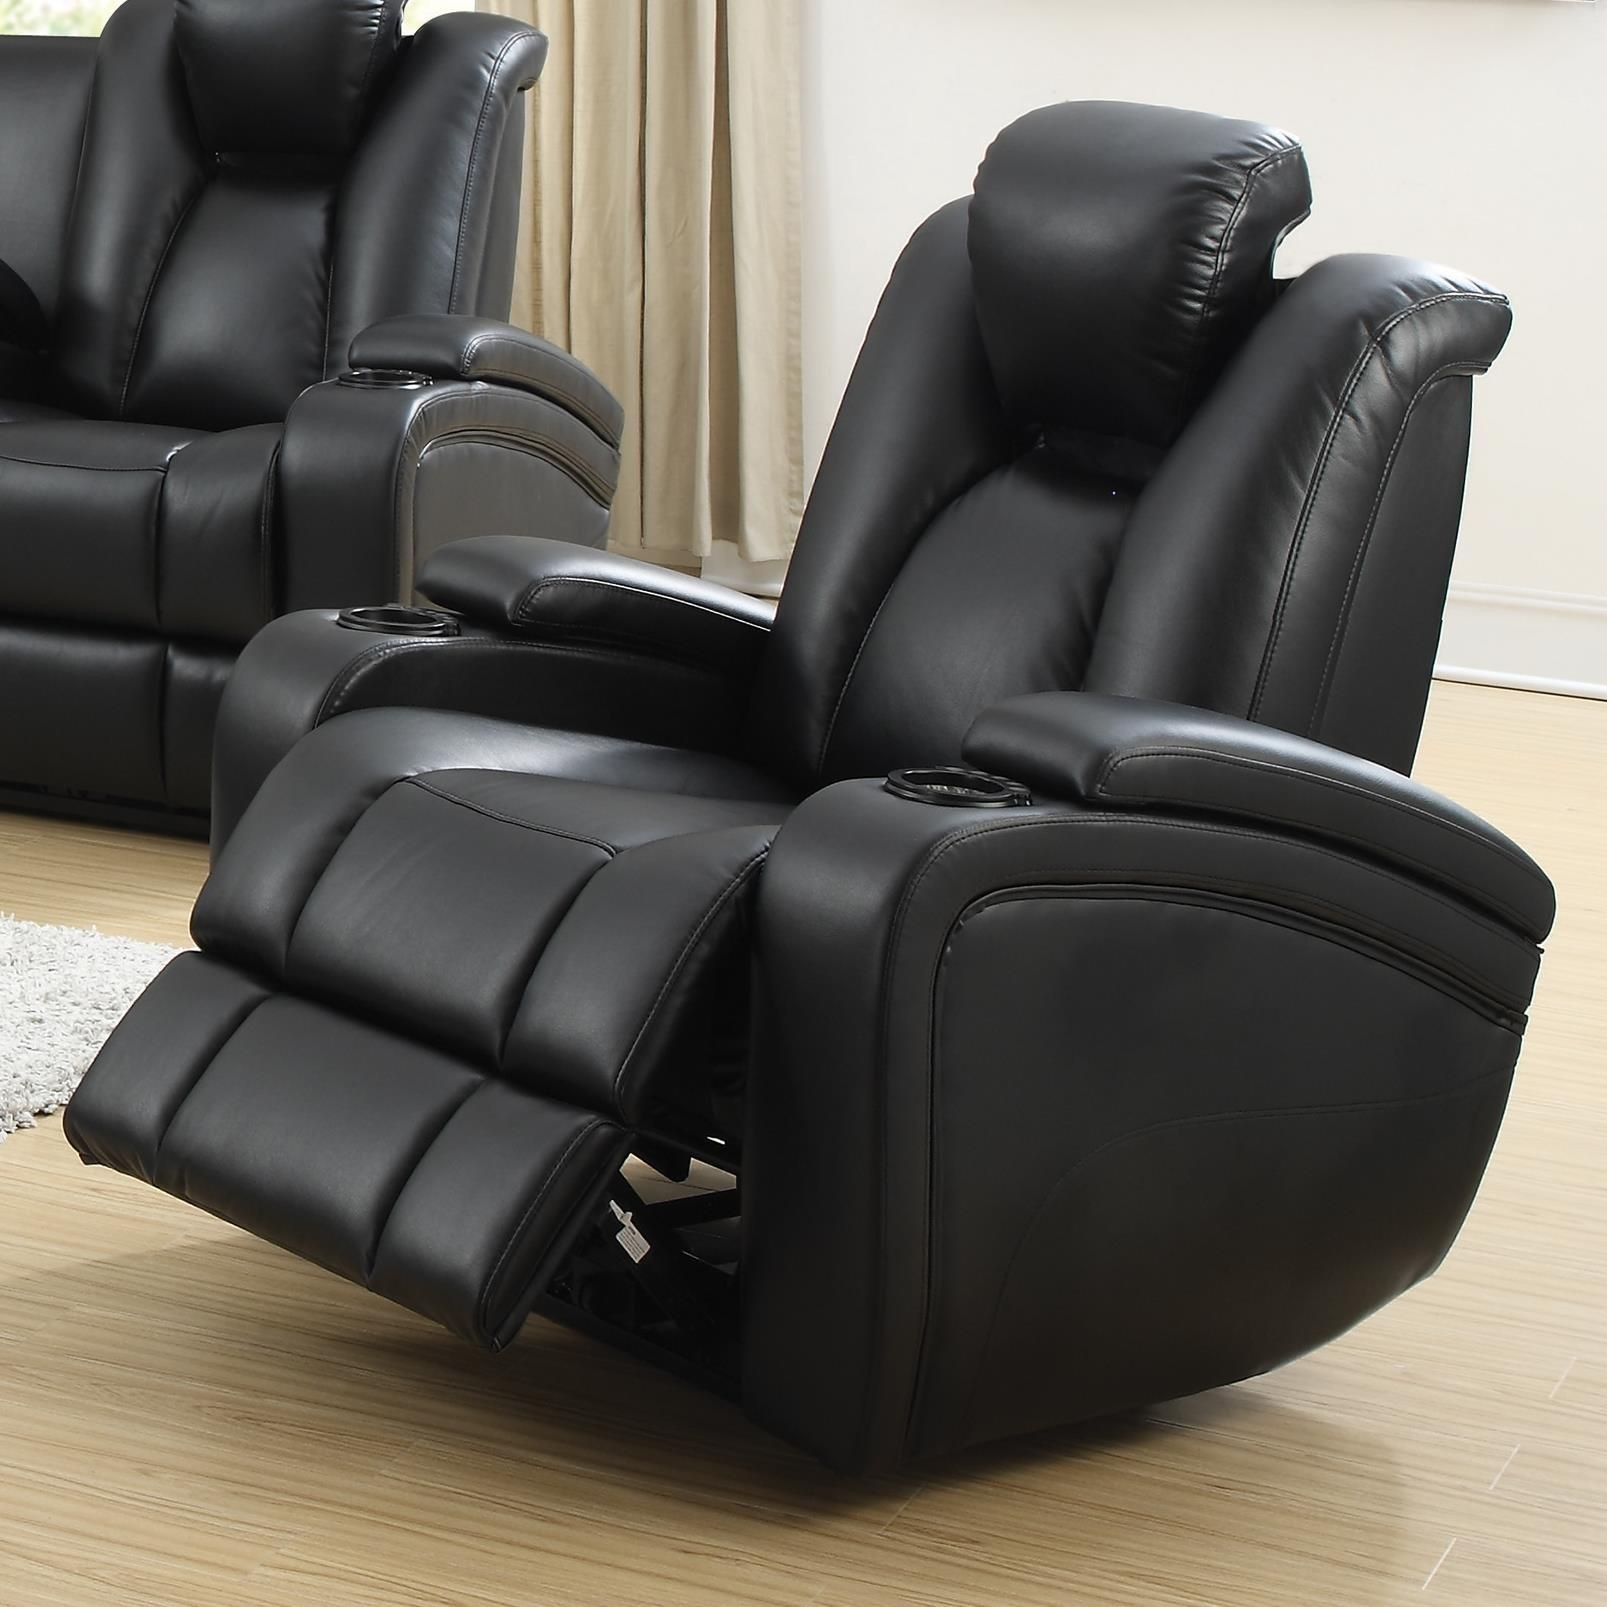 604840 & Delange Power Recliner from Coaster (601743P) | Coleman Furniture islam-shia.org